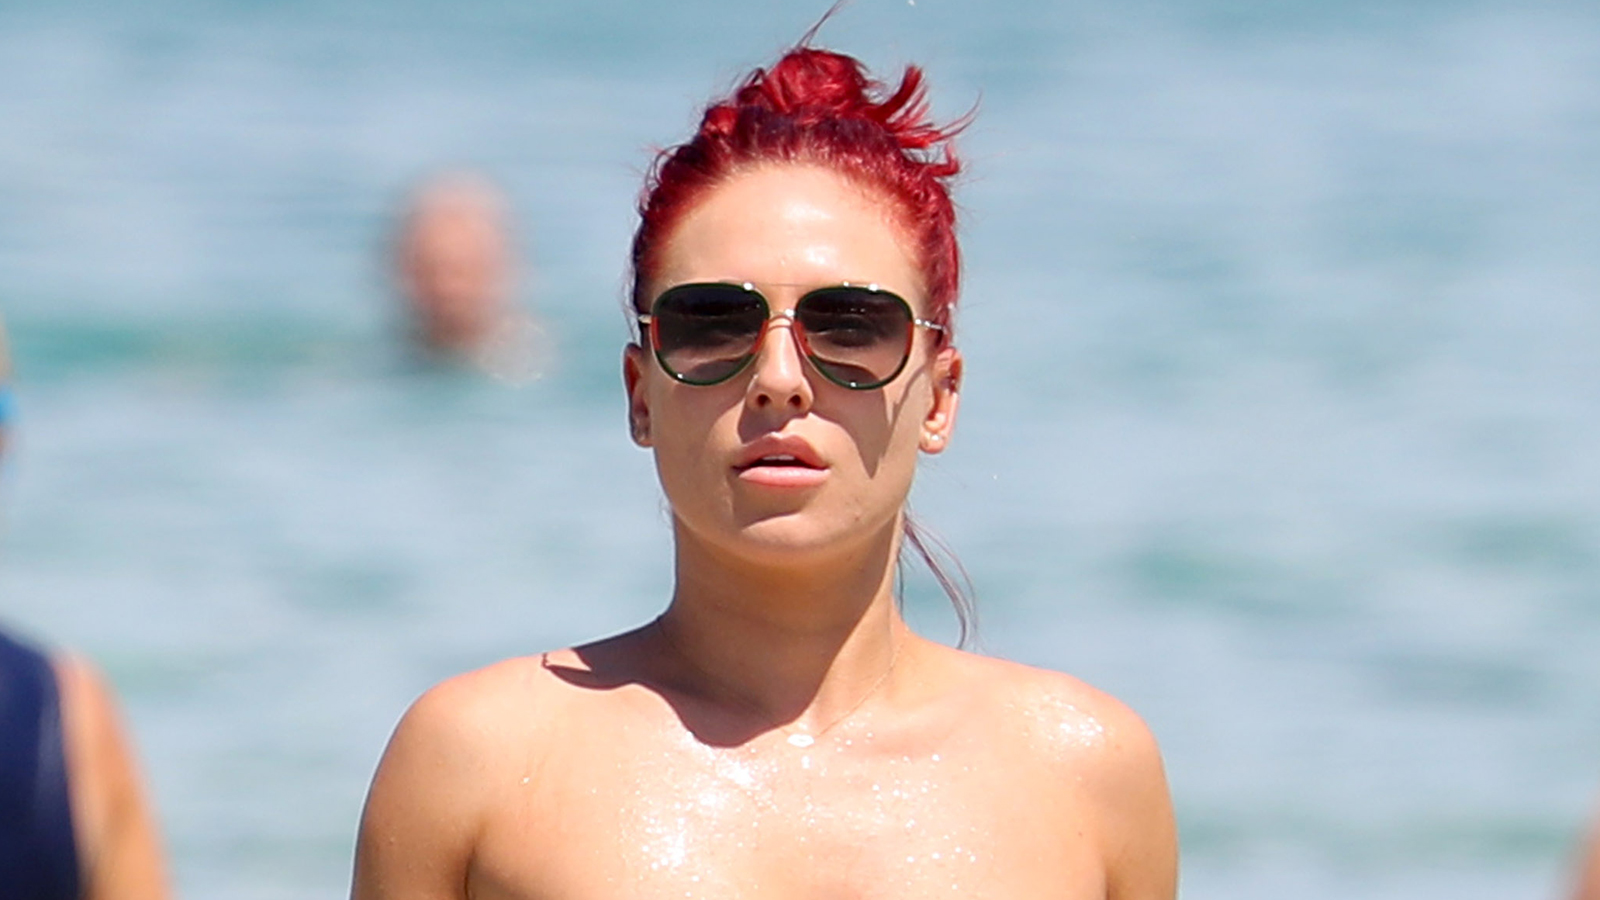 'Dancing With the Stars' Pro Sharna Burgess Looks Ripped in a Bikini While Hanging Out in Sydney